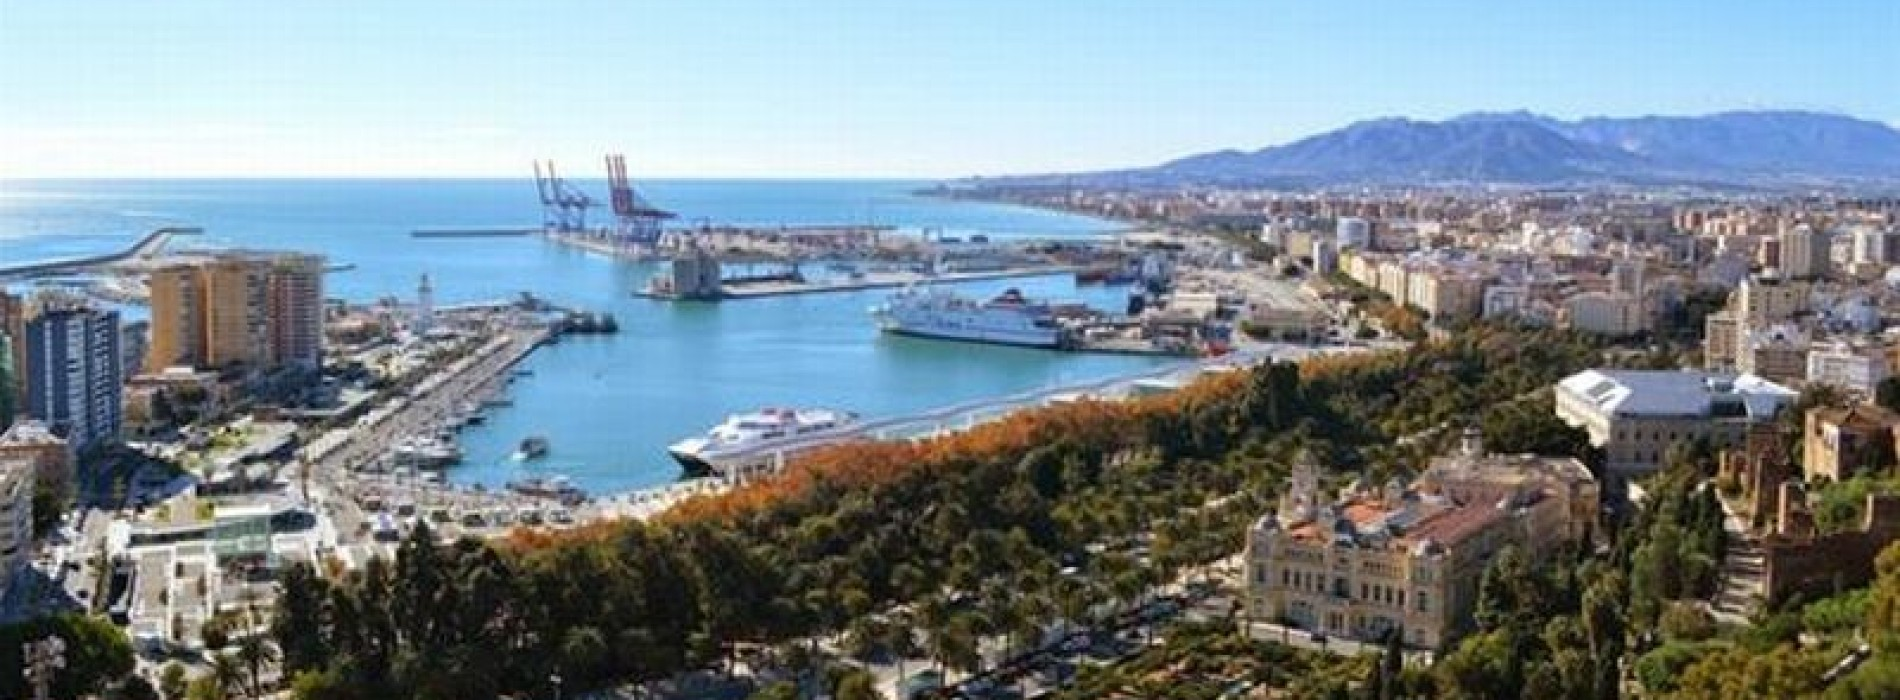 Guide to accessible holidays in Spain part two: Malaga City